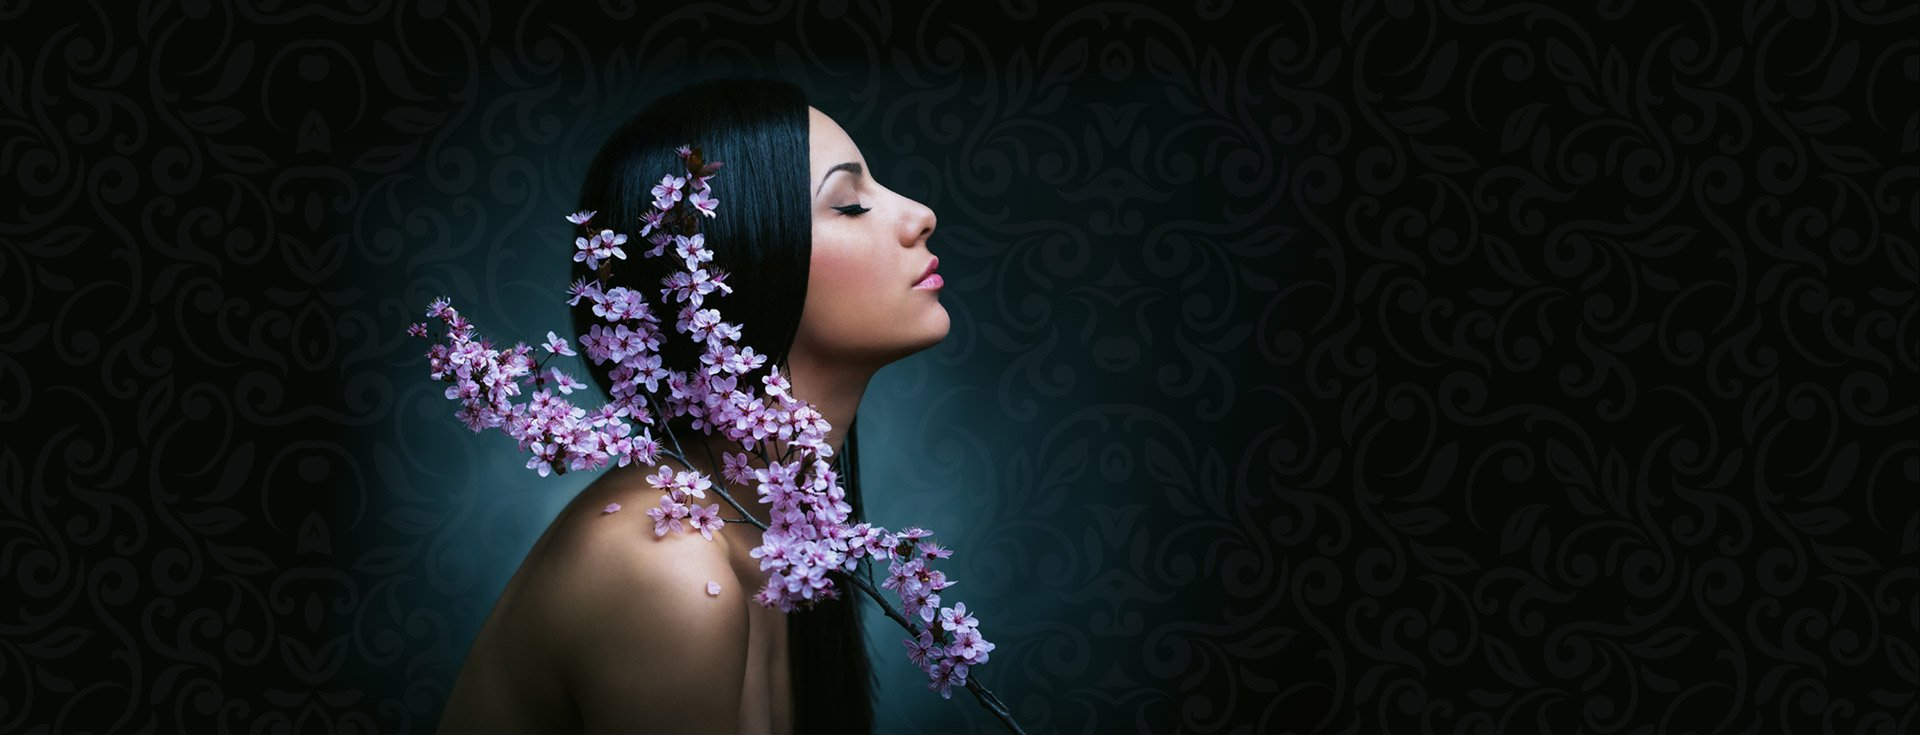 a girl with lavender flowers